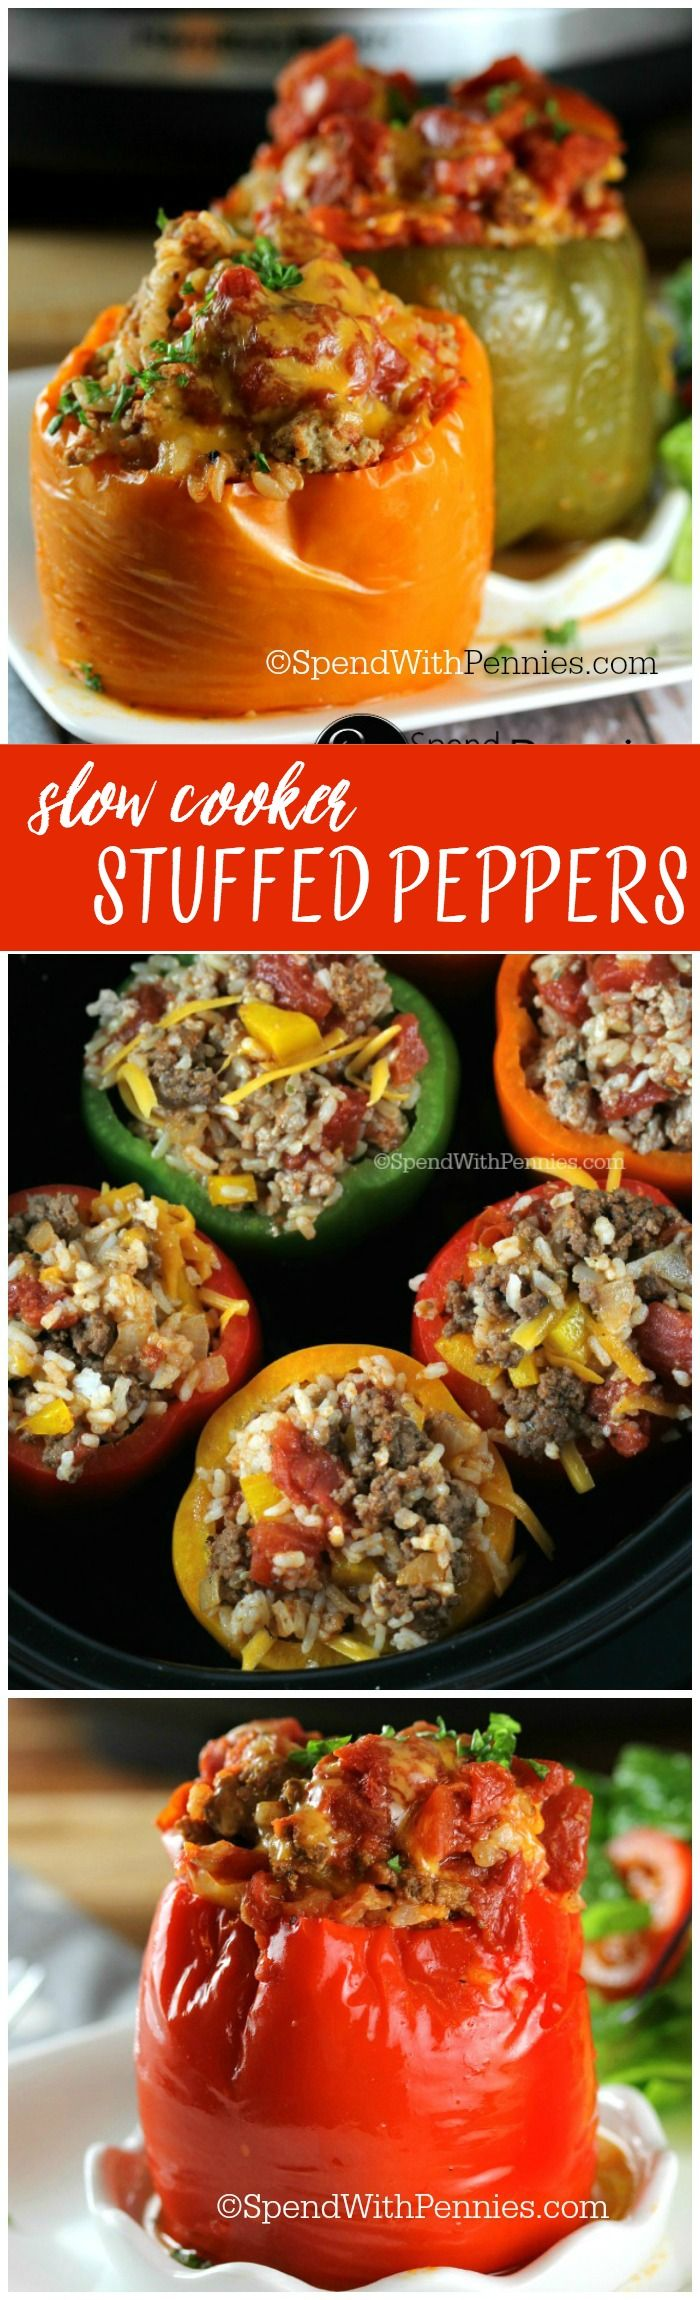 Crock Pot Stuffed Peppers These Deliciously Easy Stuffed Peppers Are The Perfect Meal To Slow Cooker Stuffed Peppers Stuffed Peppers Crockpot Stuffed Peppers